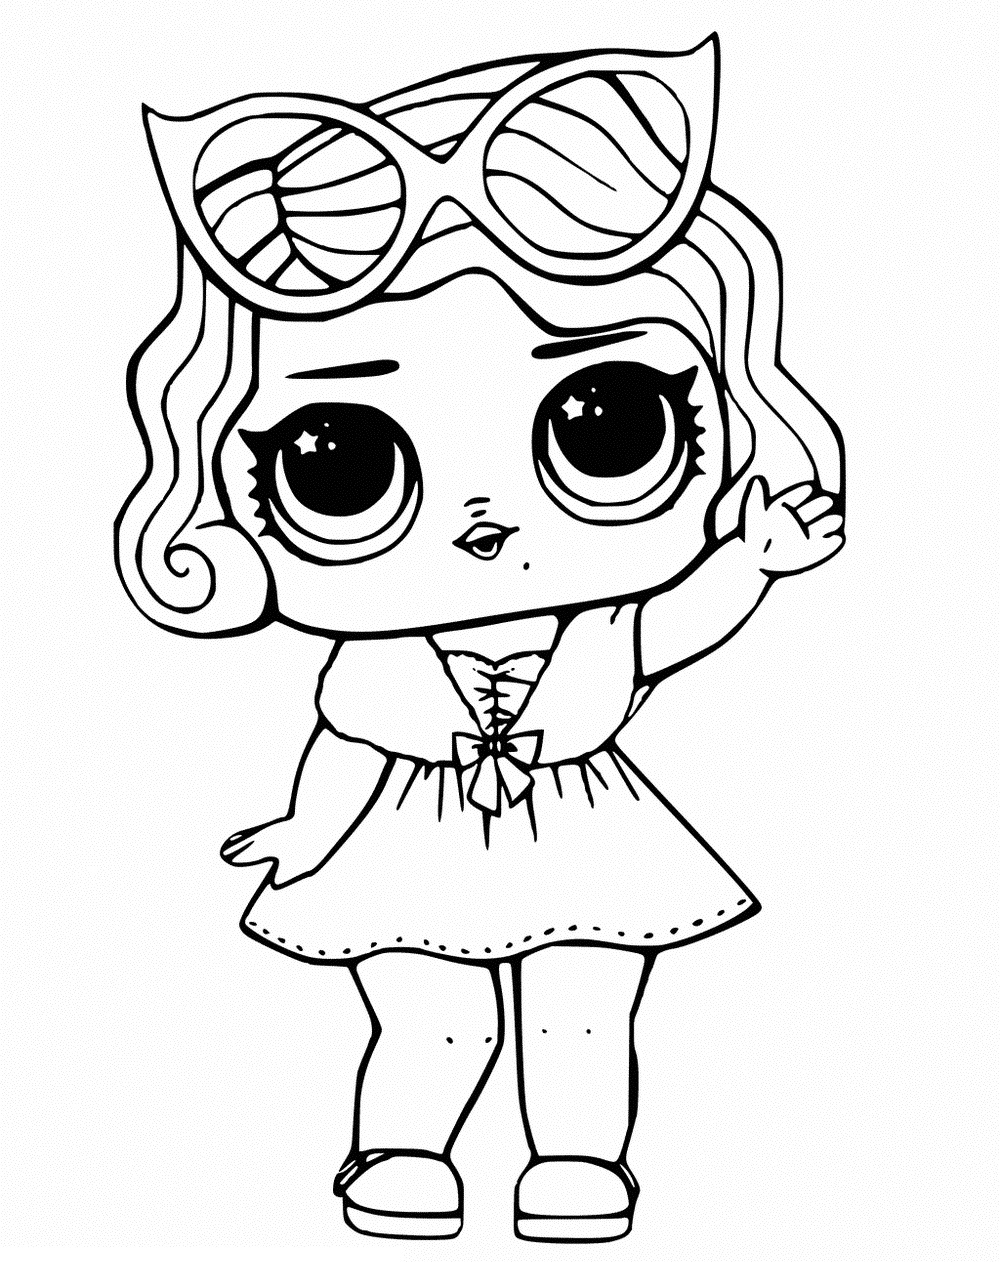 coloring sheets lol lol dolls coloring pages best coloring pages for kids lol coloring sheets